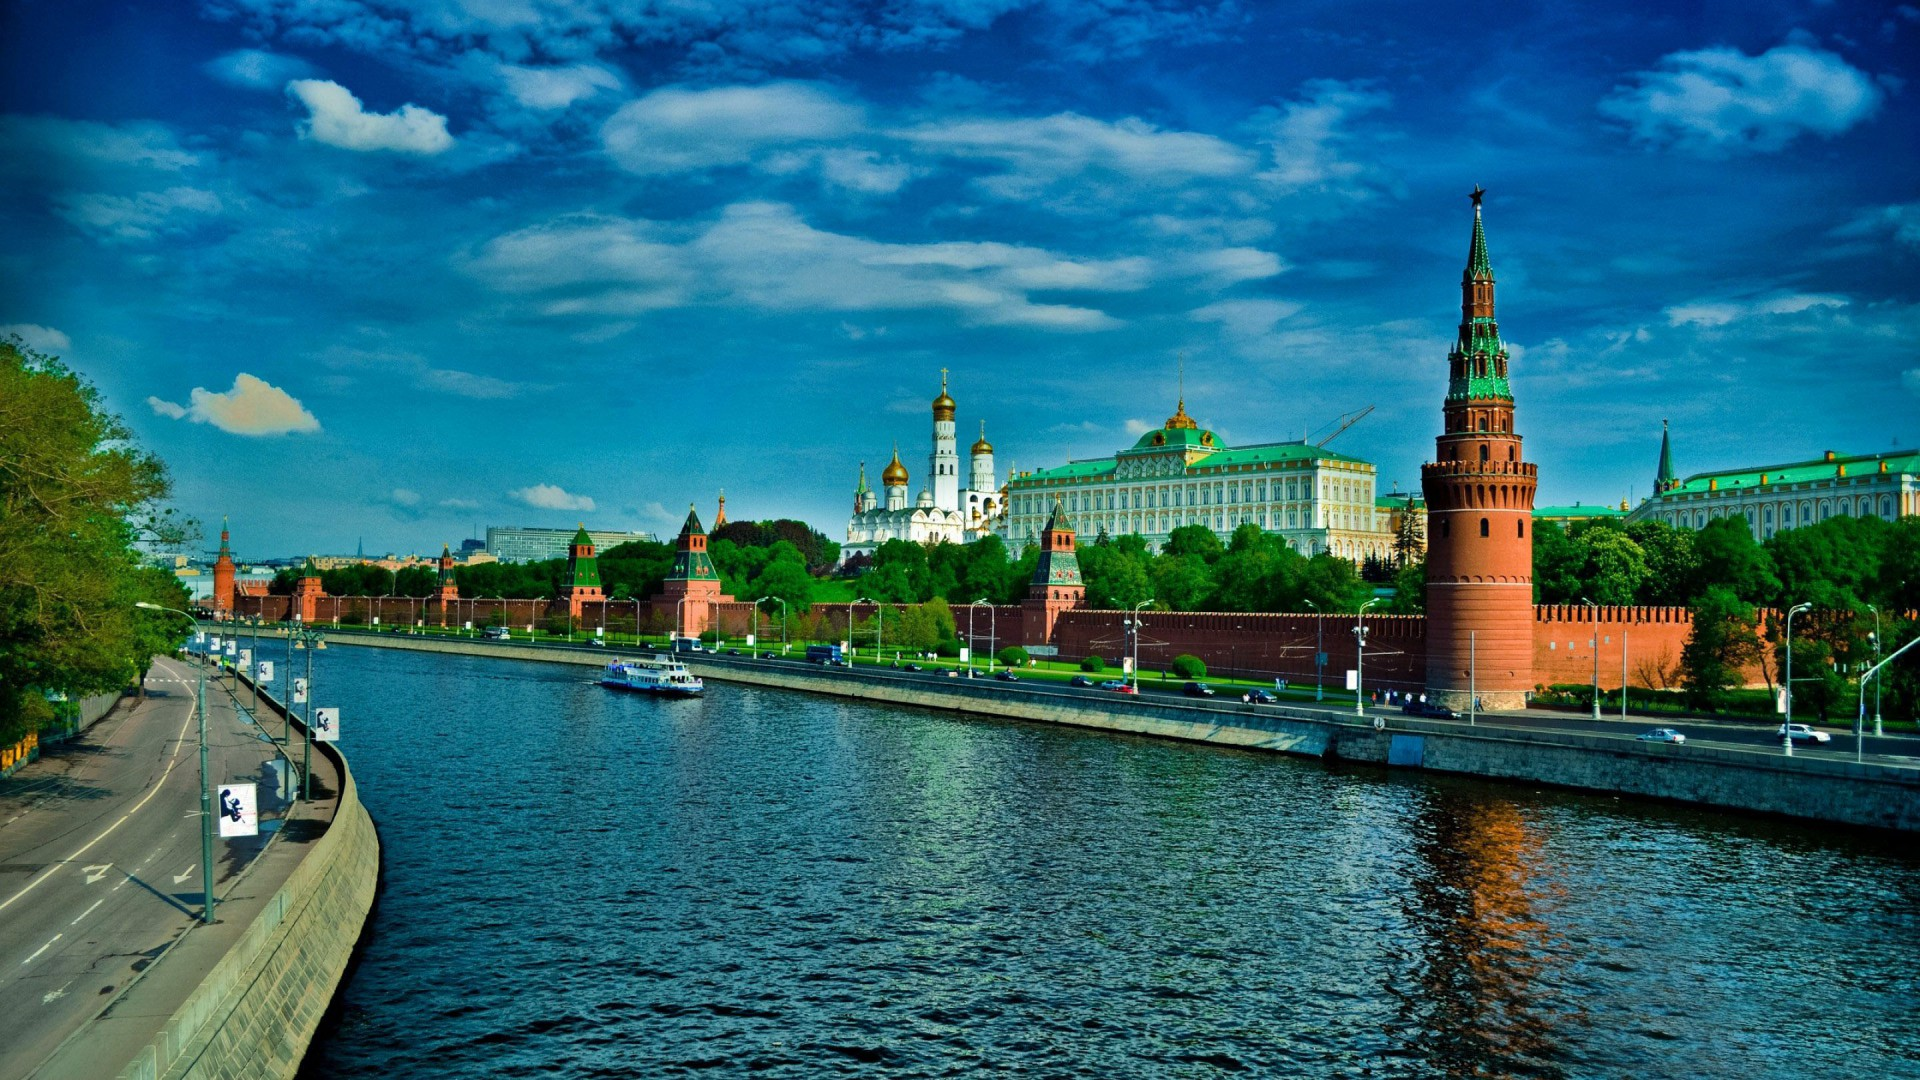 25 Awesome Russian HD wallpapers for your desktop - 6